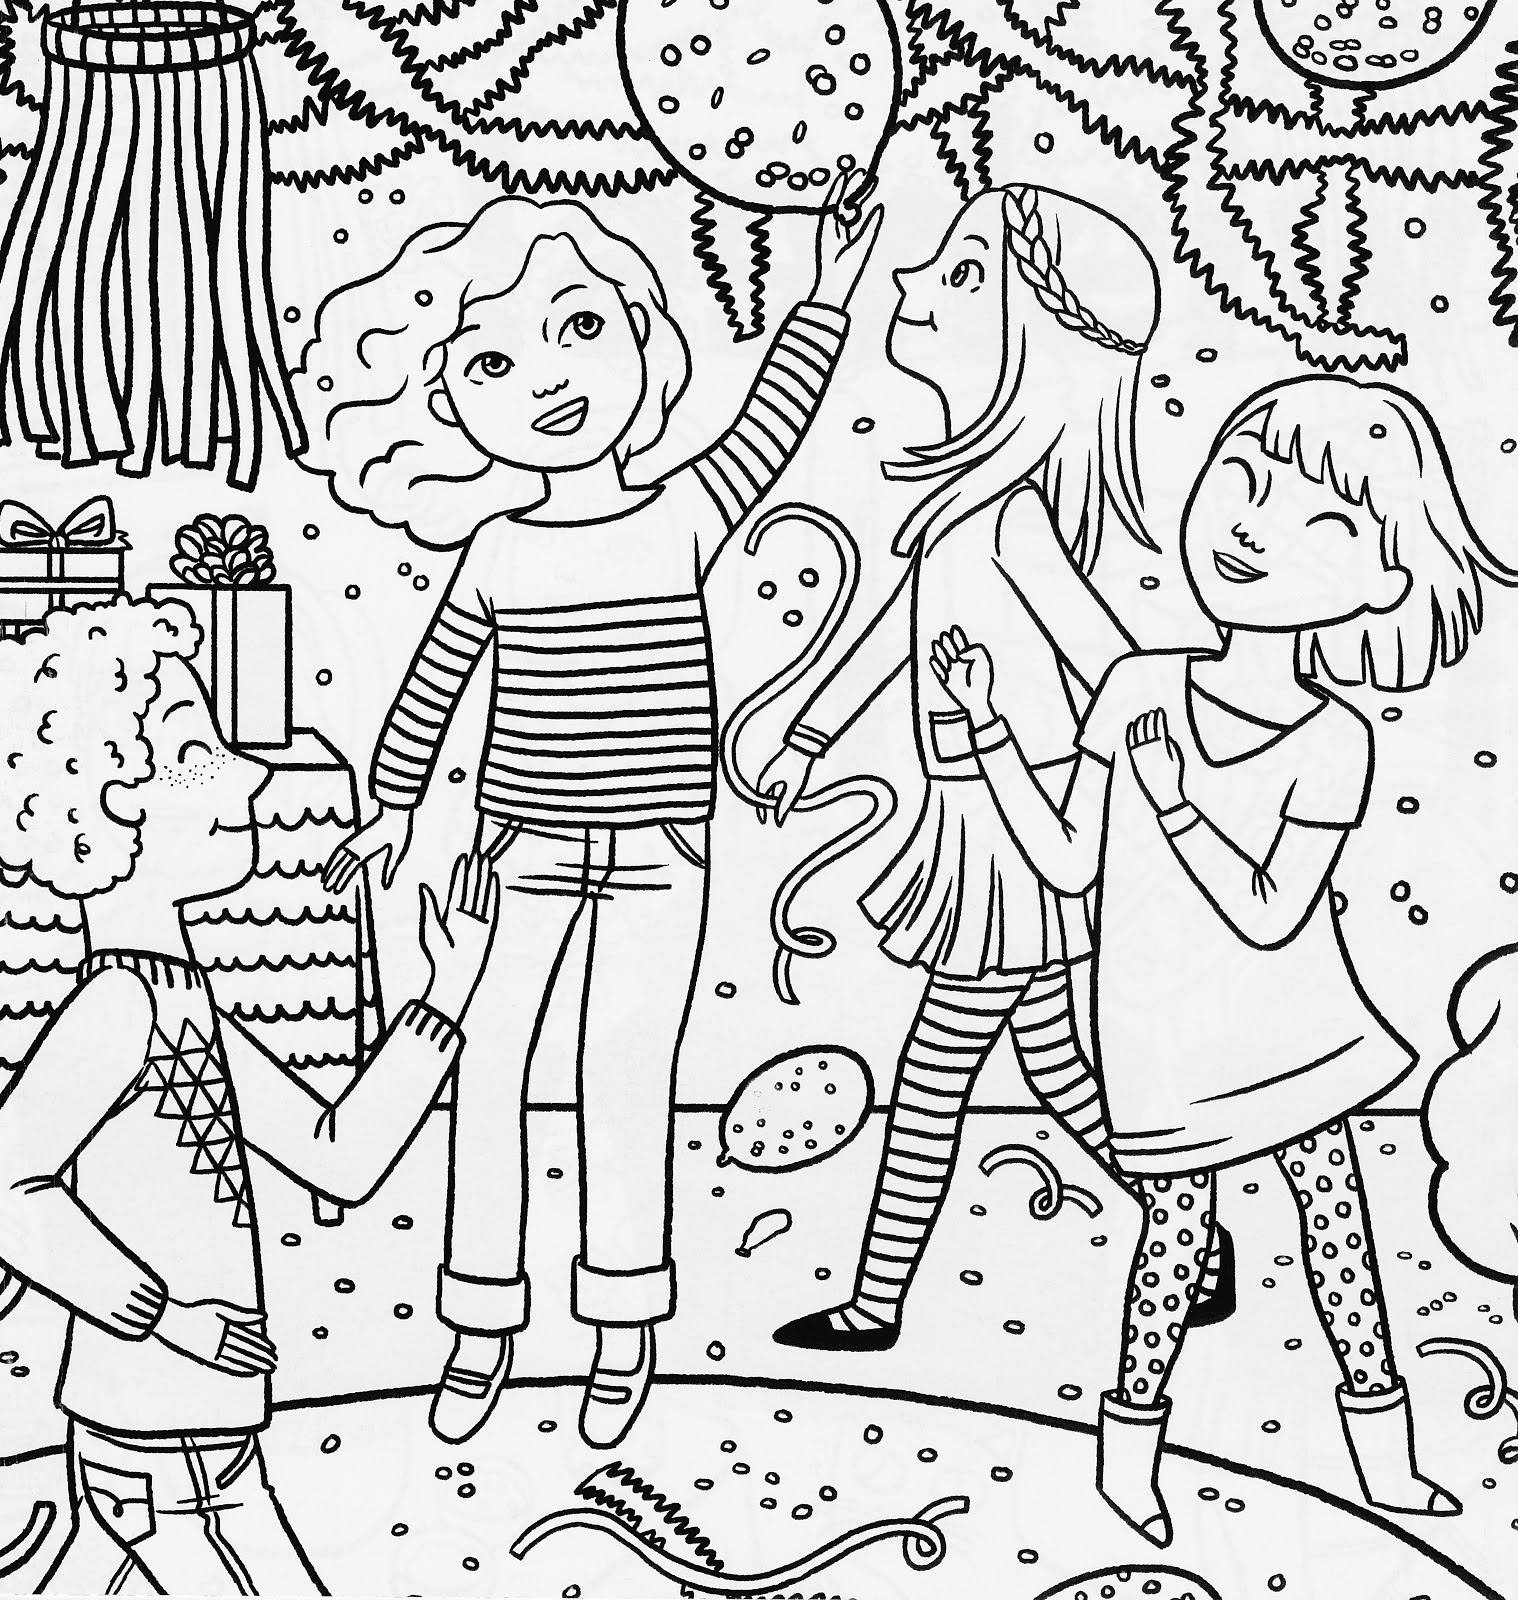 birthday girl coloring pages a little girl holding a happy birthday cake coloring page coloring pages girl birthday